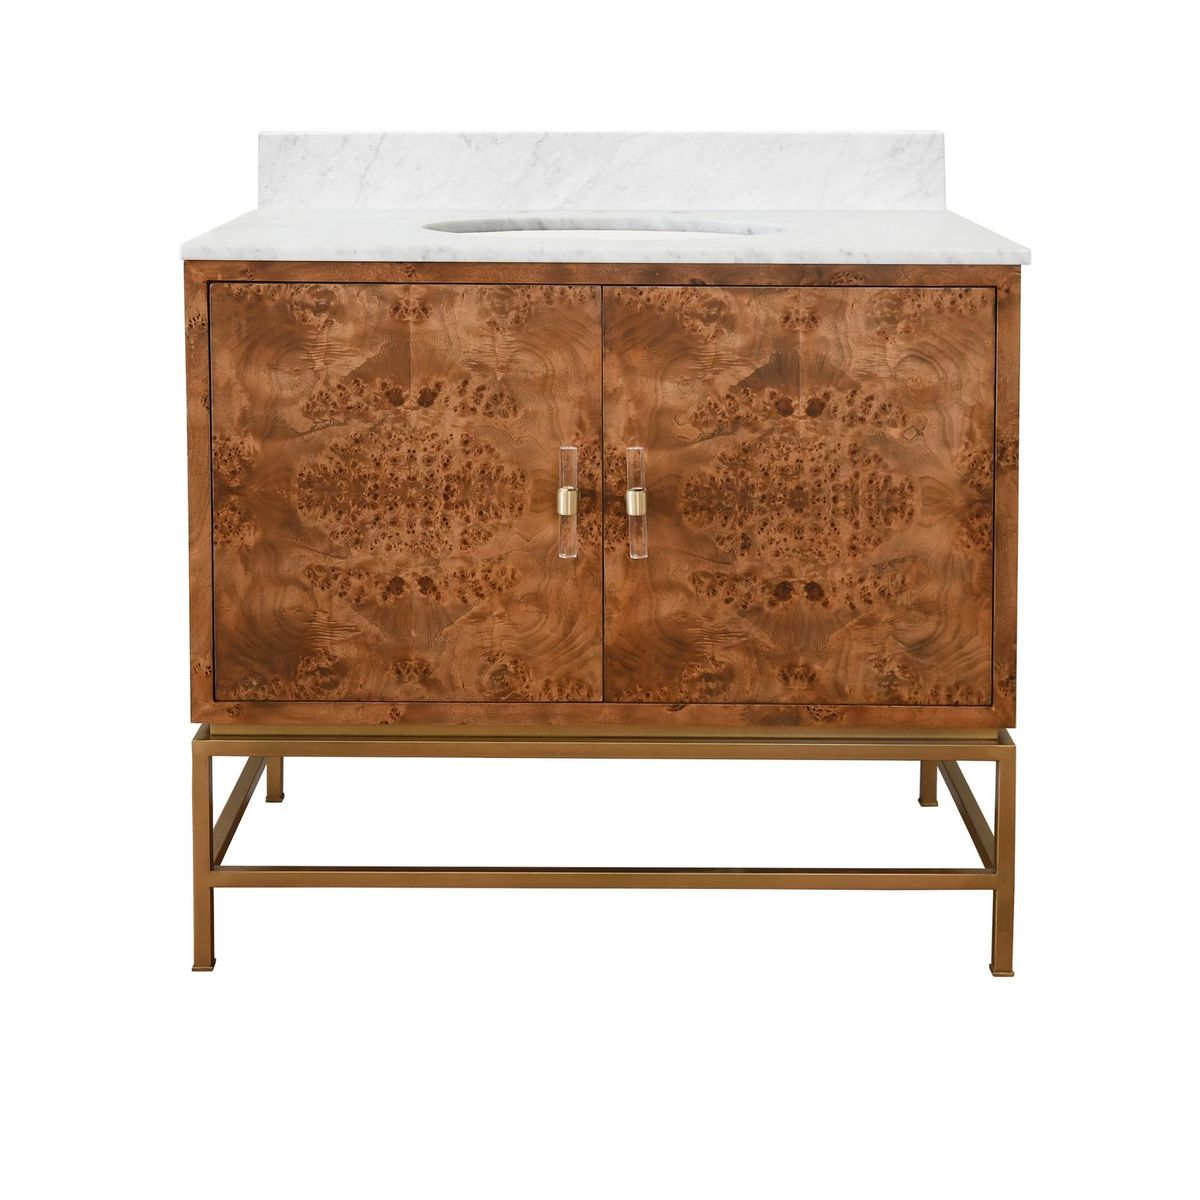 Bath Vanity in Matte Dark Burl Wood and Antique Brass with White Marble Top and Porcelain Sink